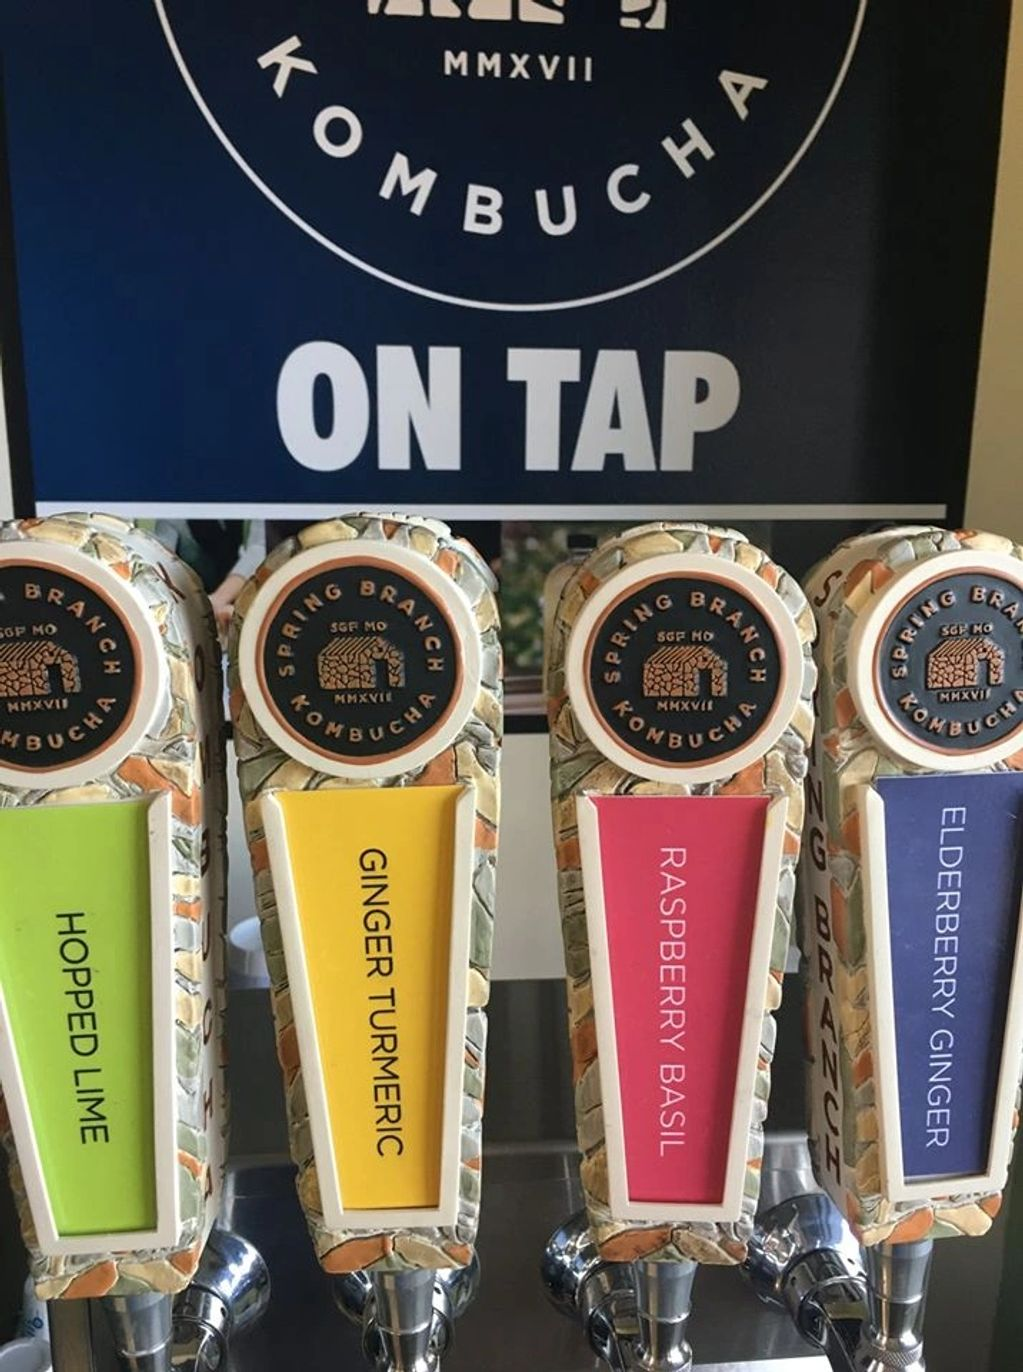 Local brewed kombucha on tap